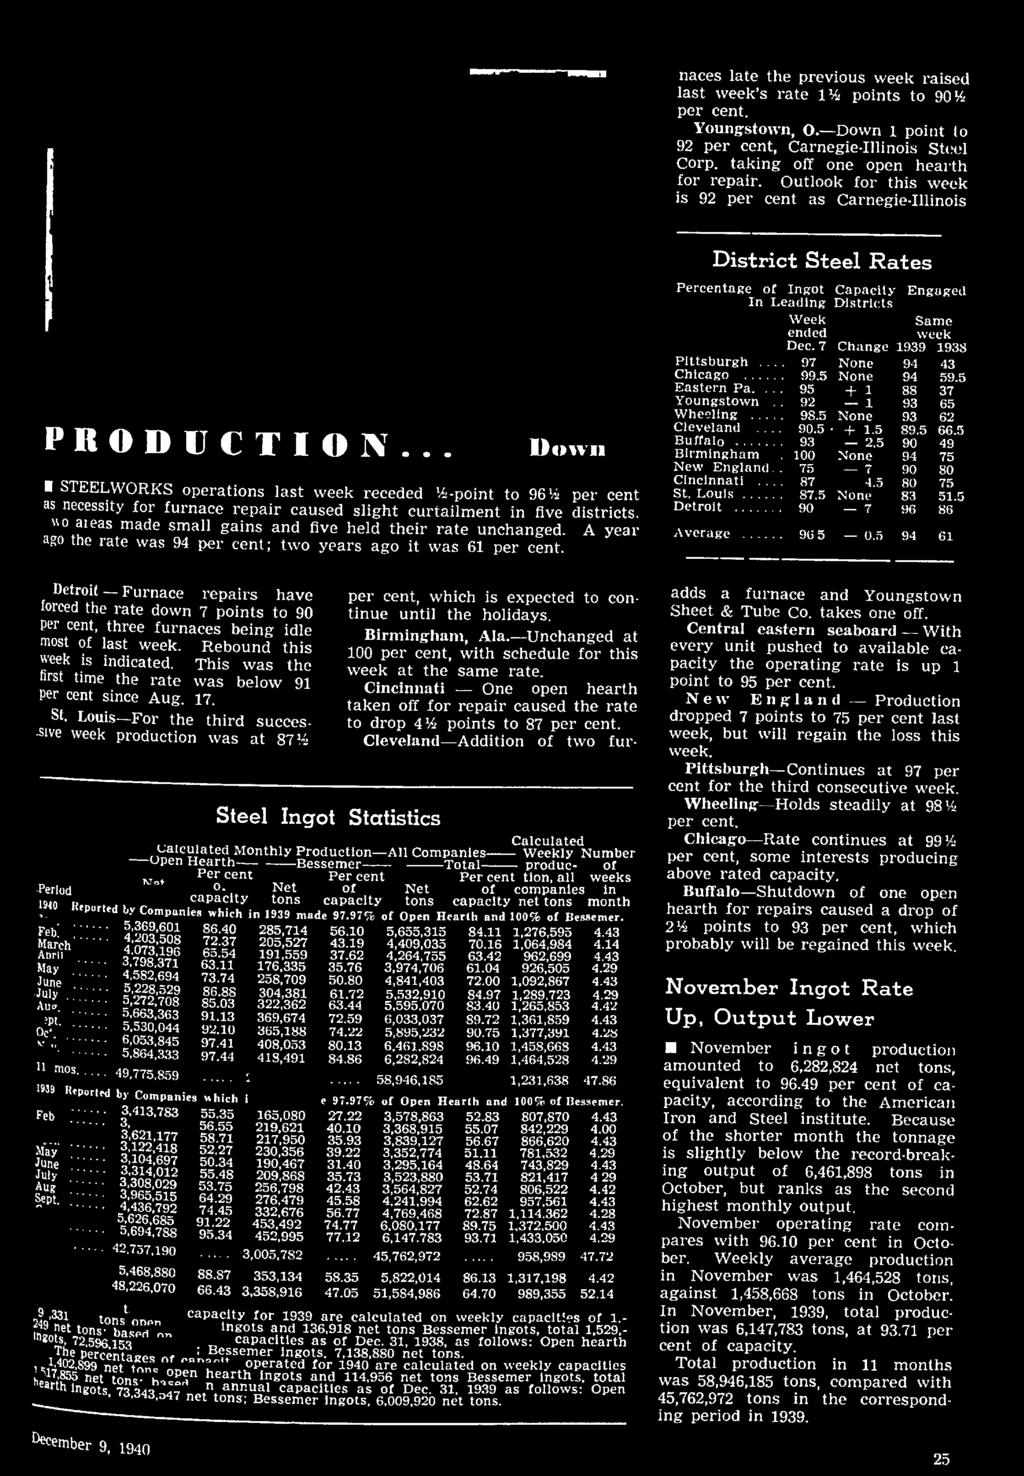 Production Processing Distribution Use Pdf Barrel Swivel With Interlock Snap Pioneer No 5 7 Change 1939 193s Pittsburgh 97 None 94 43 C Hicago